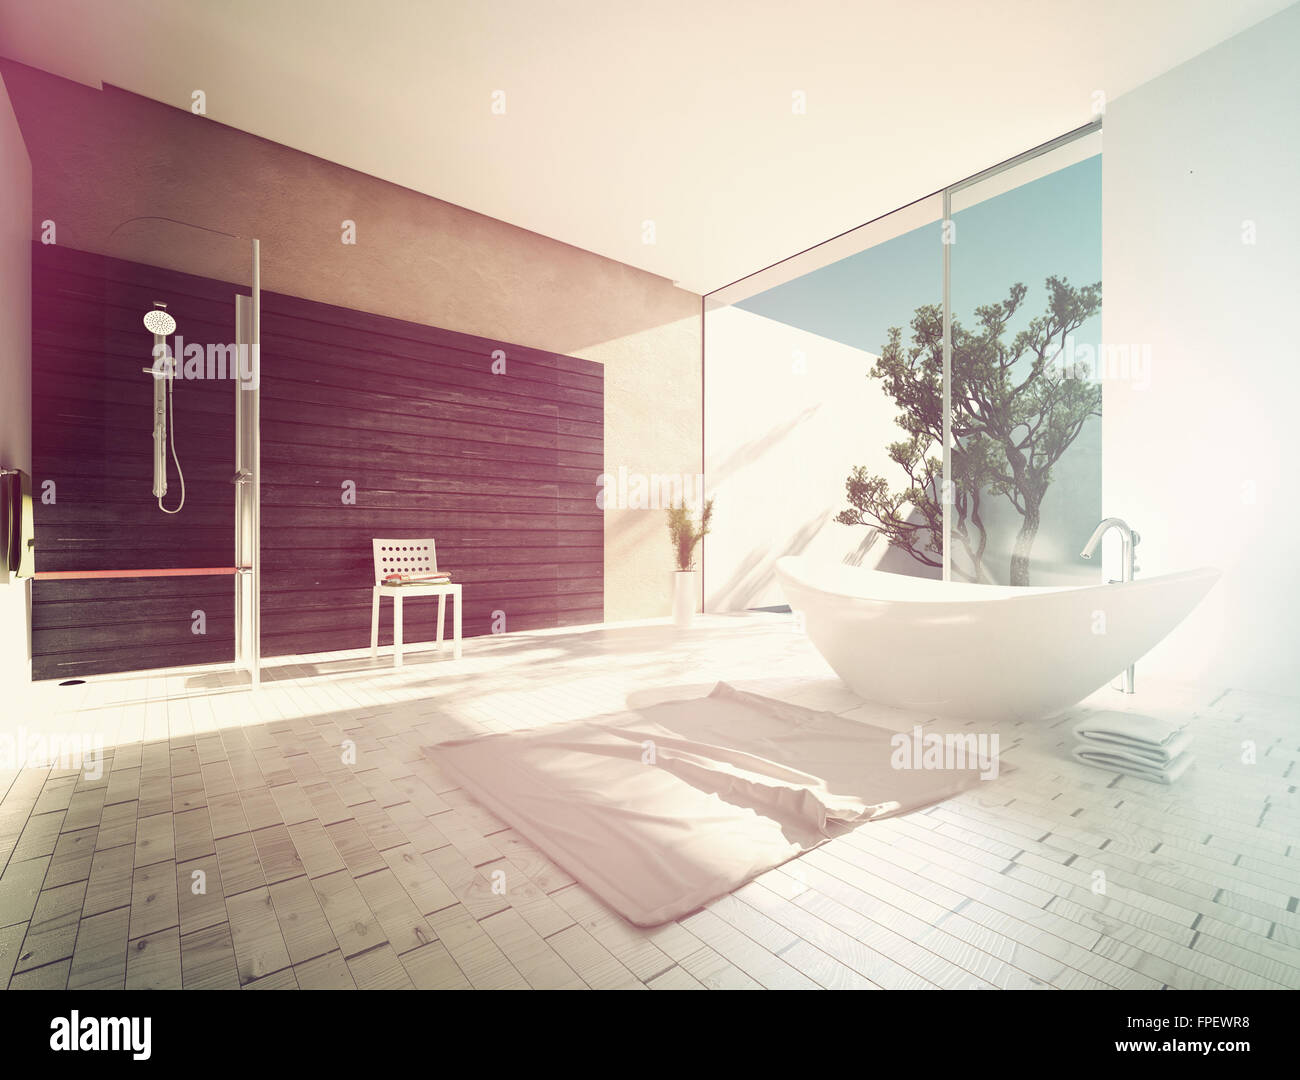 Boat-shaped freestanding tub in a spacious sunny modern bathroom with parquet floors, grey accent wall and shower Stock Photo